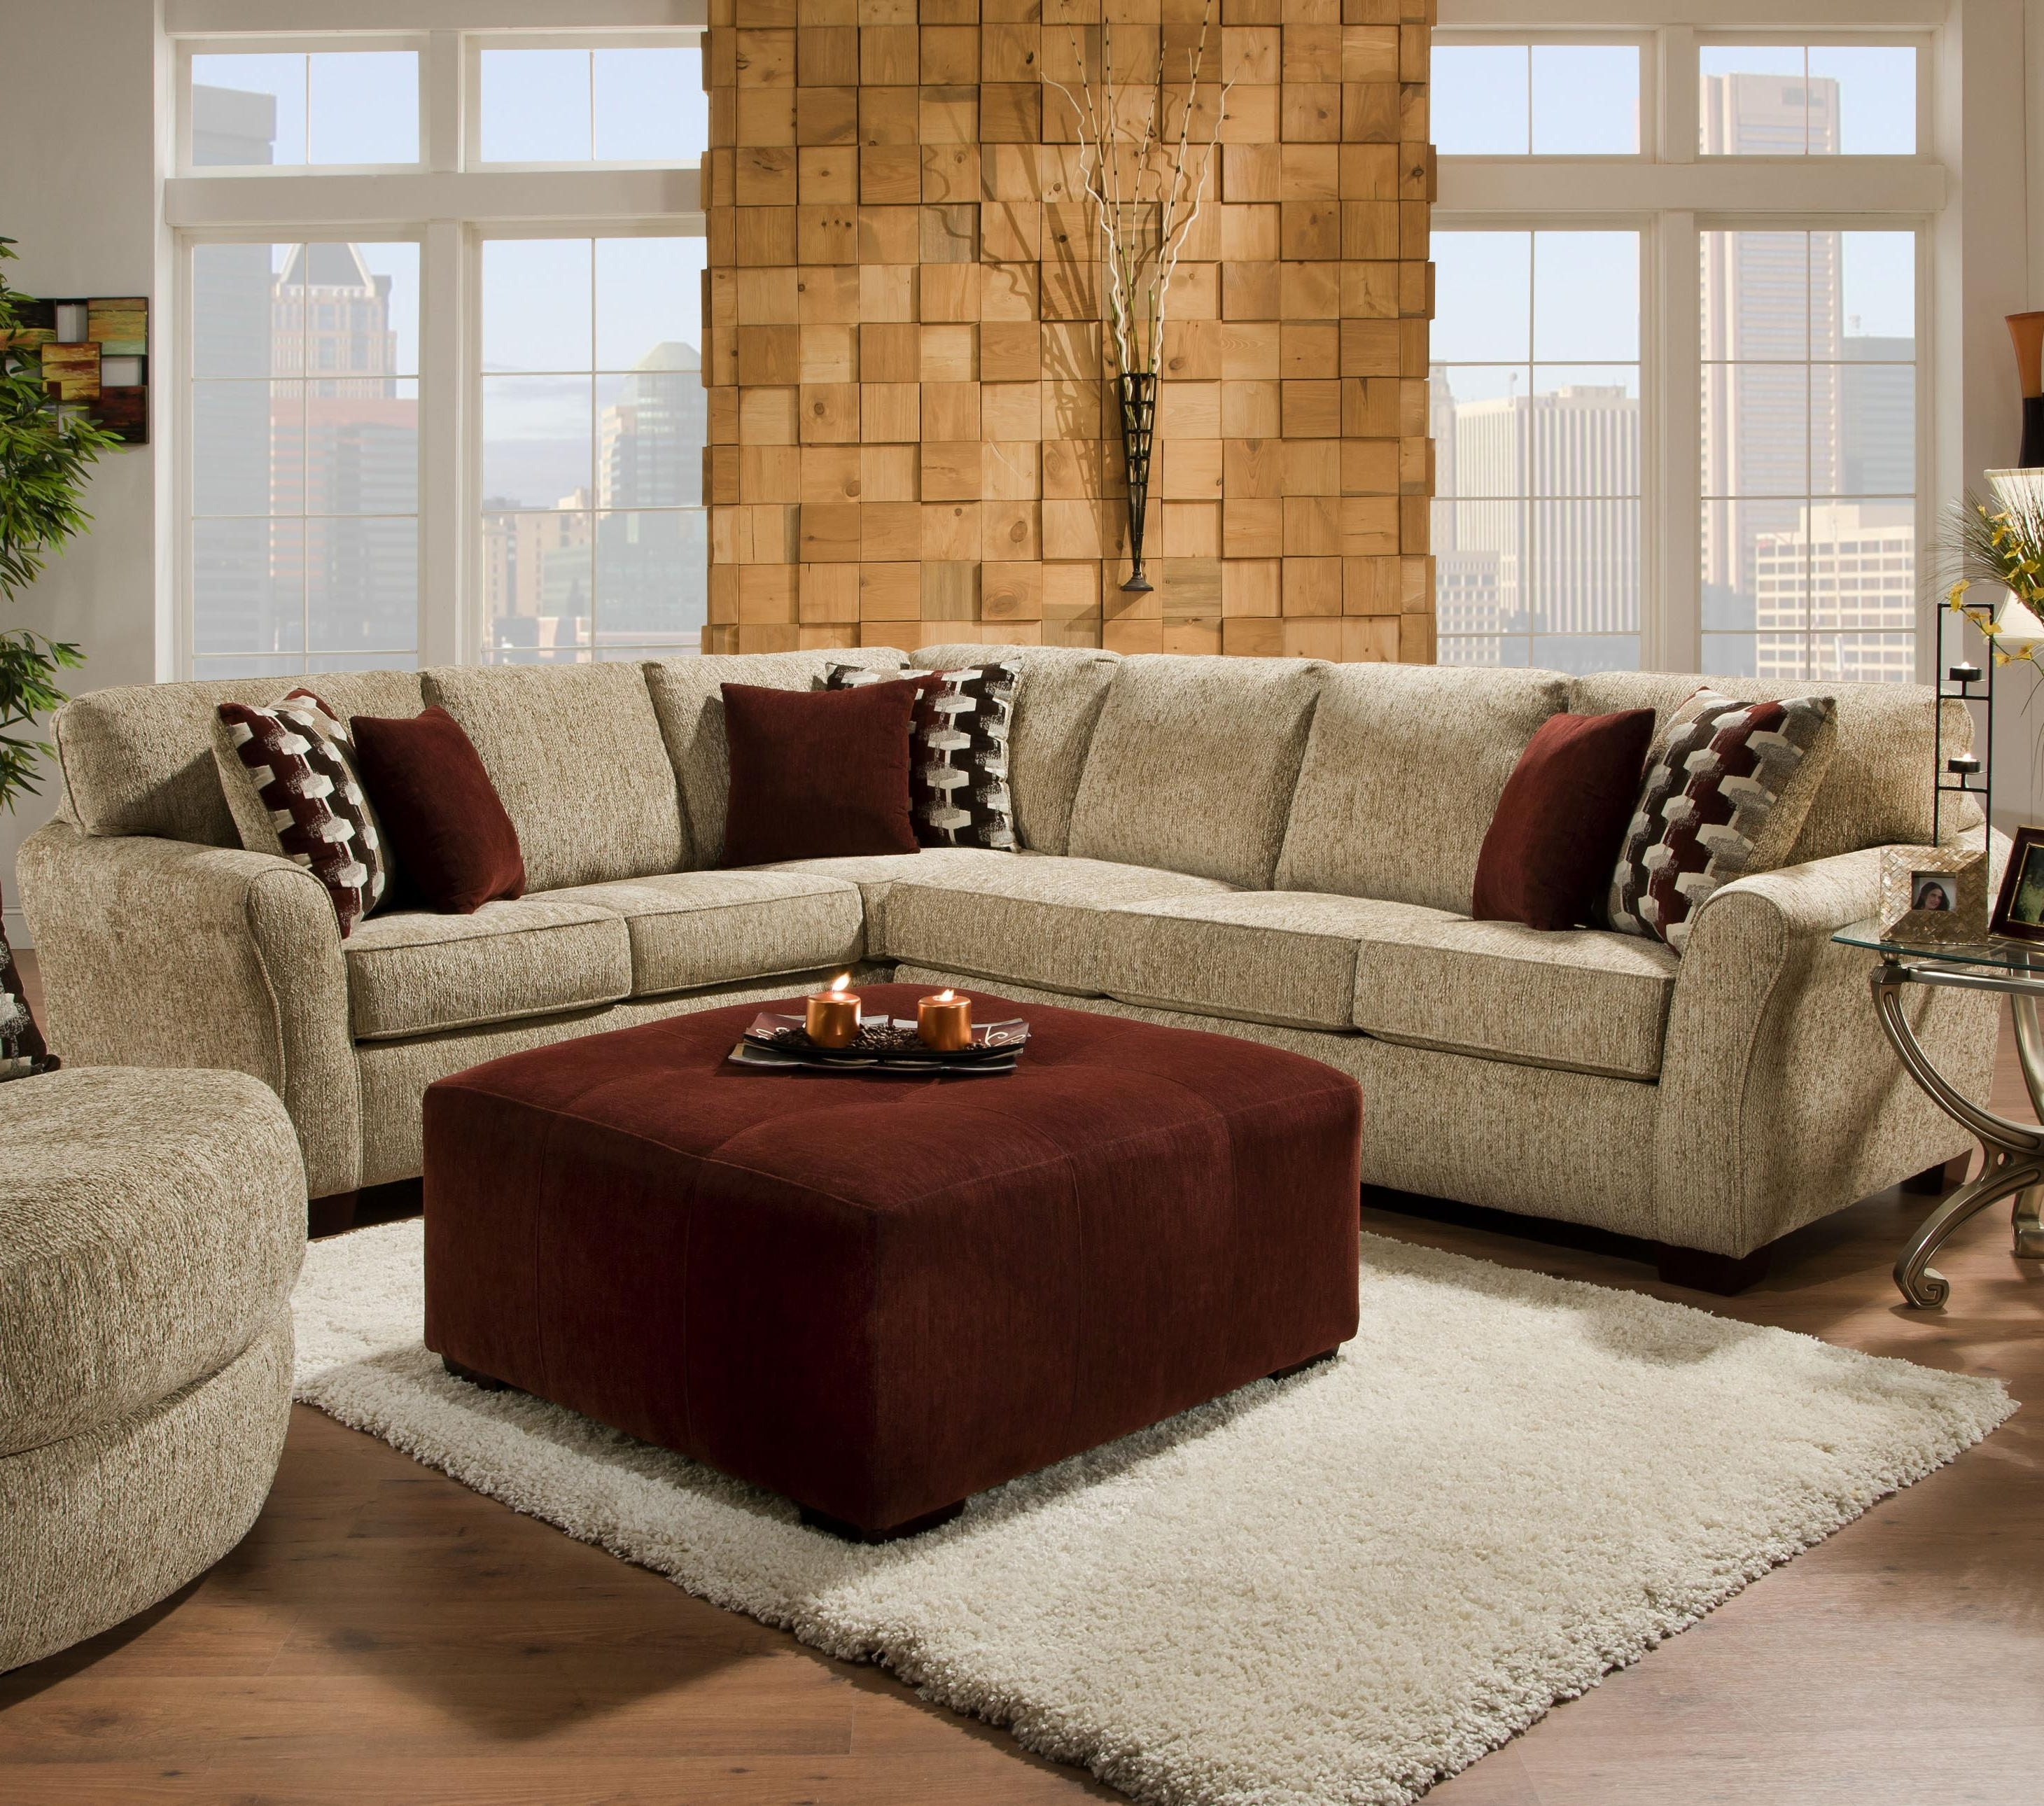 Johnny Janosik Sectional Sofas Throughout Most Up To Date 2500 Contemporary Styled Sectional Sofa With Sleepercorinthian (View 10 of 15)